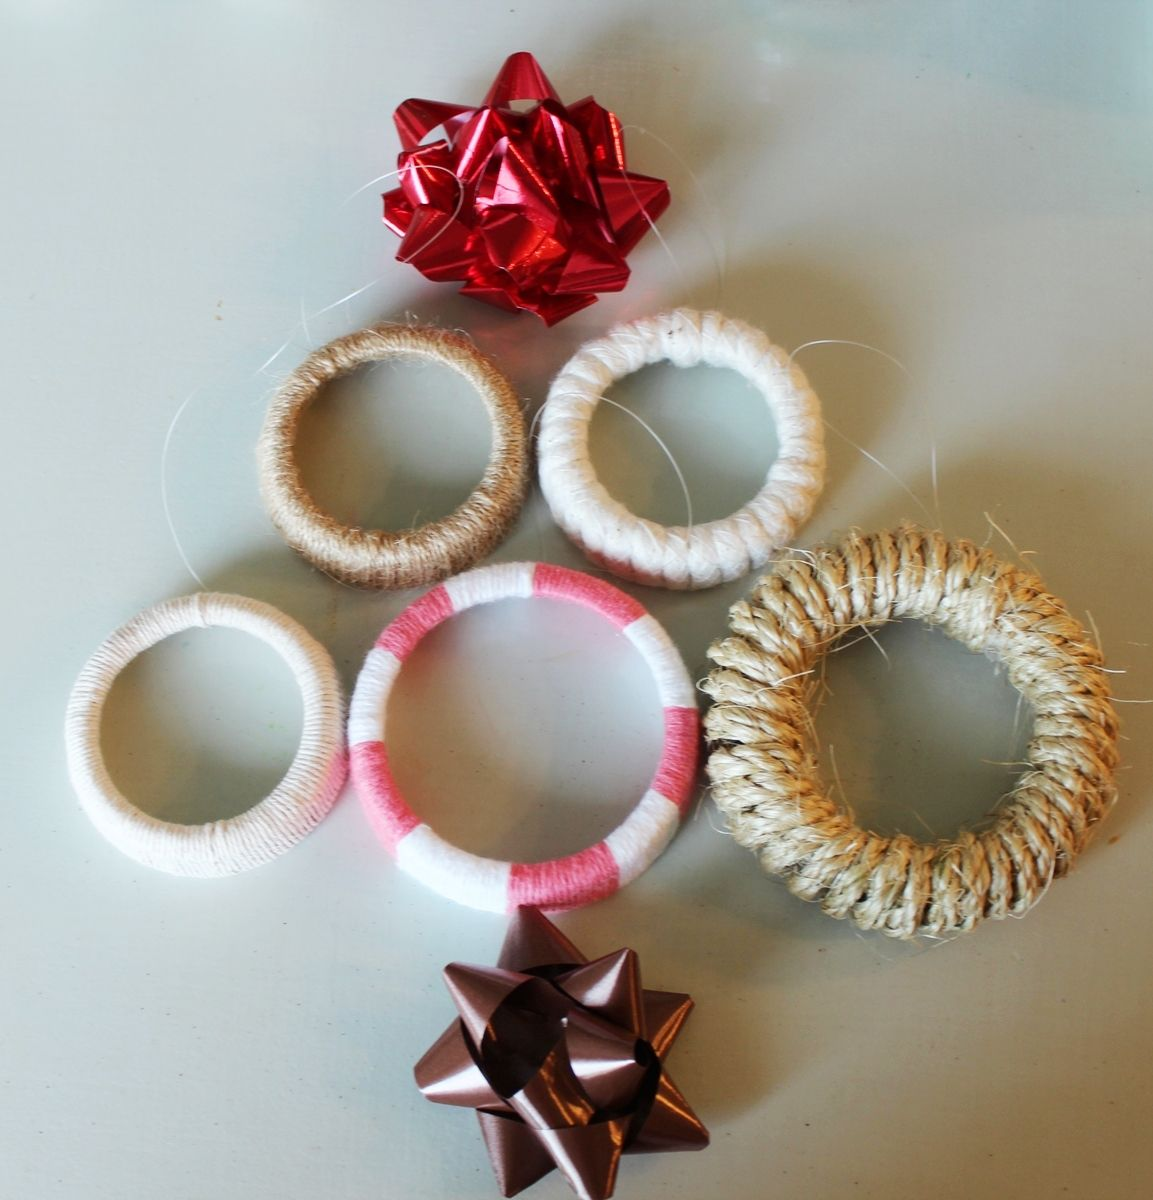 DIY Mason Jar Lid Wreaths to decorate the Tree